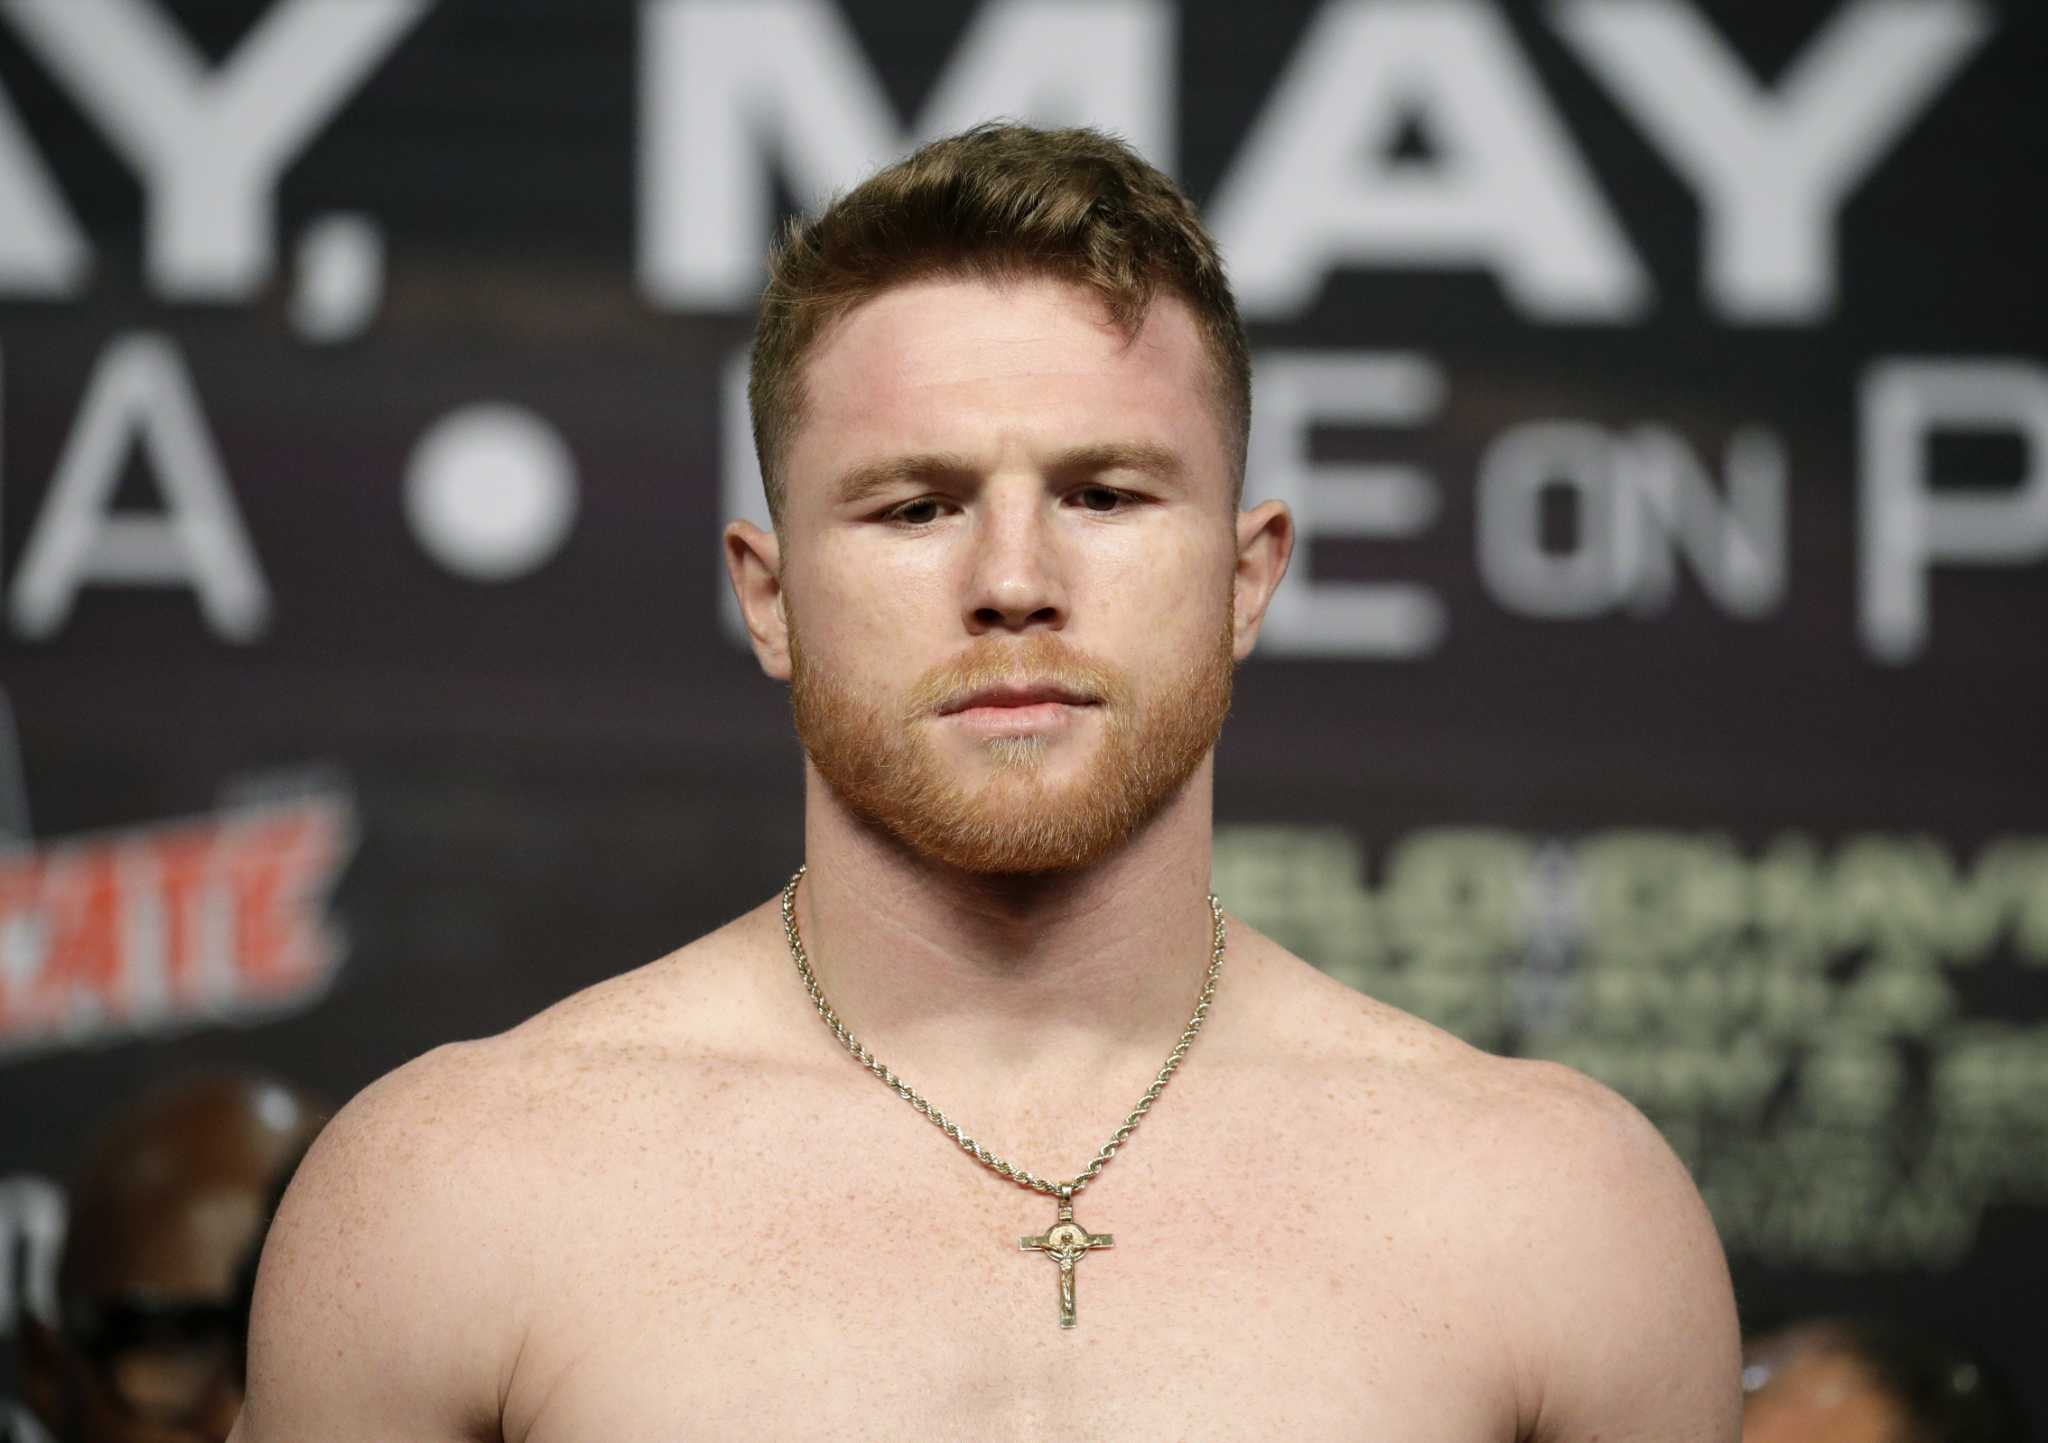 Next up for Canelo Alvarez is middleweight champ Gennady ...